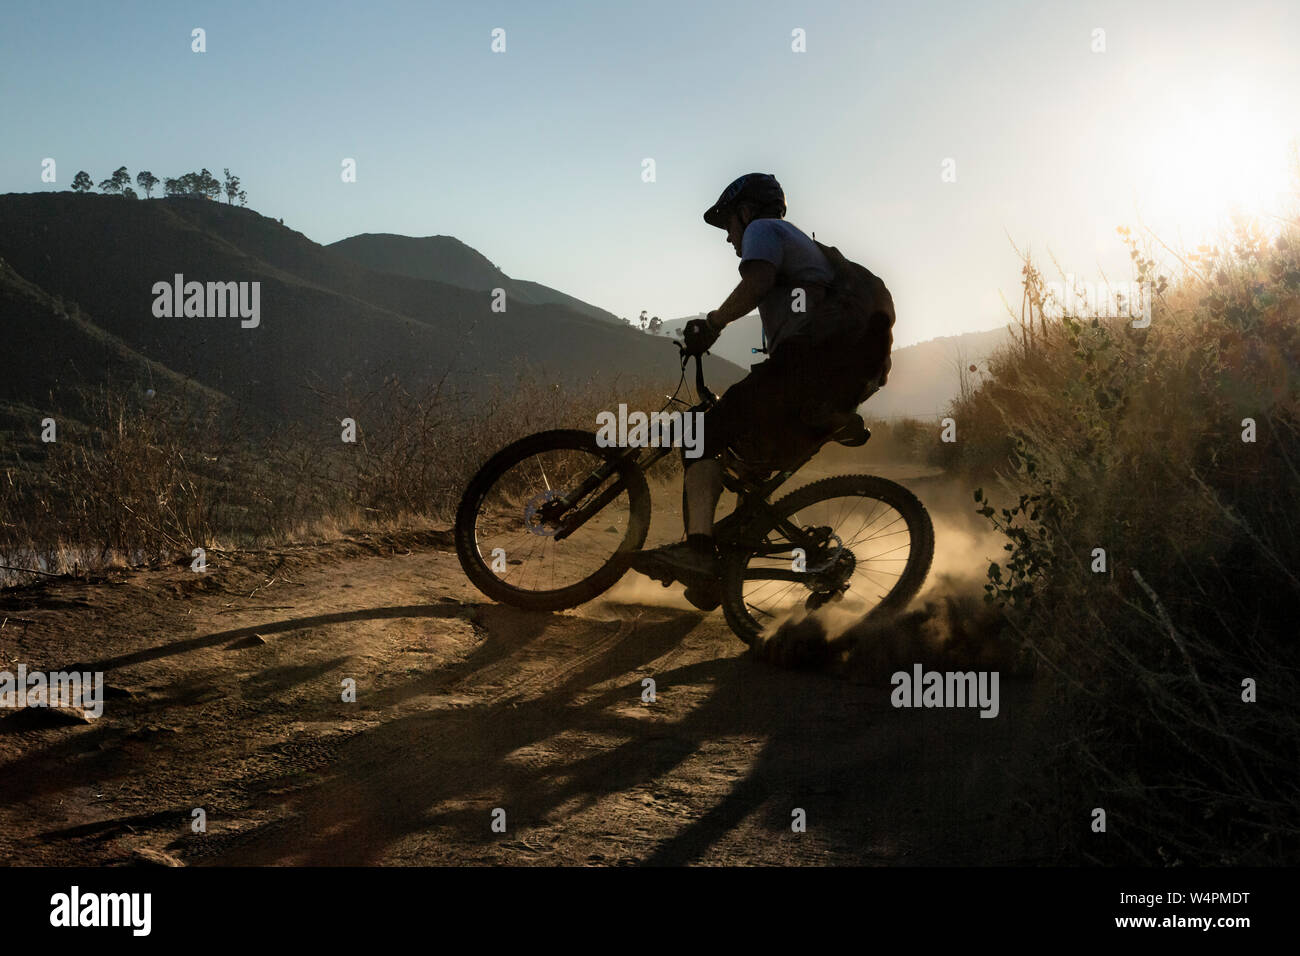 Reifer Mann reiten Mountainbike auf Trail in San Diego, Kalifornien Stockfoto